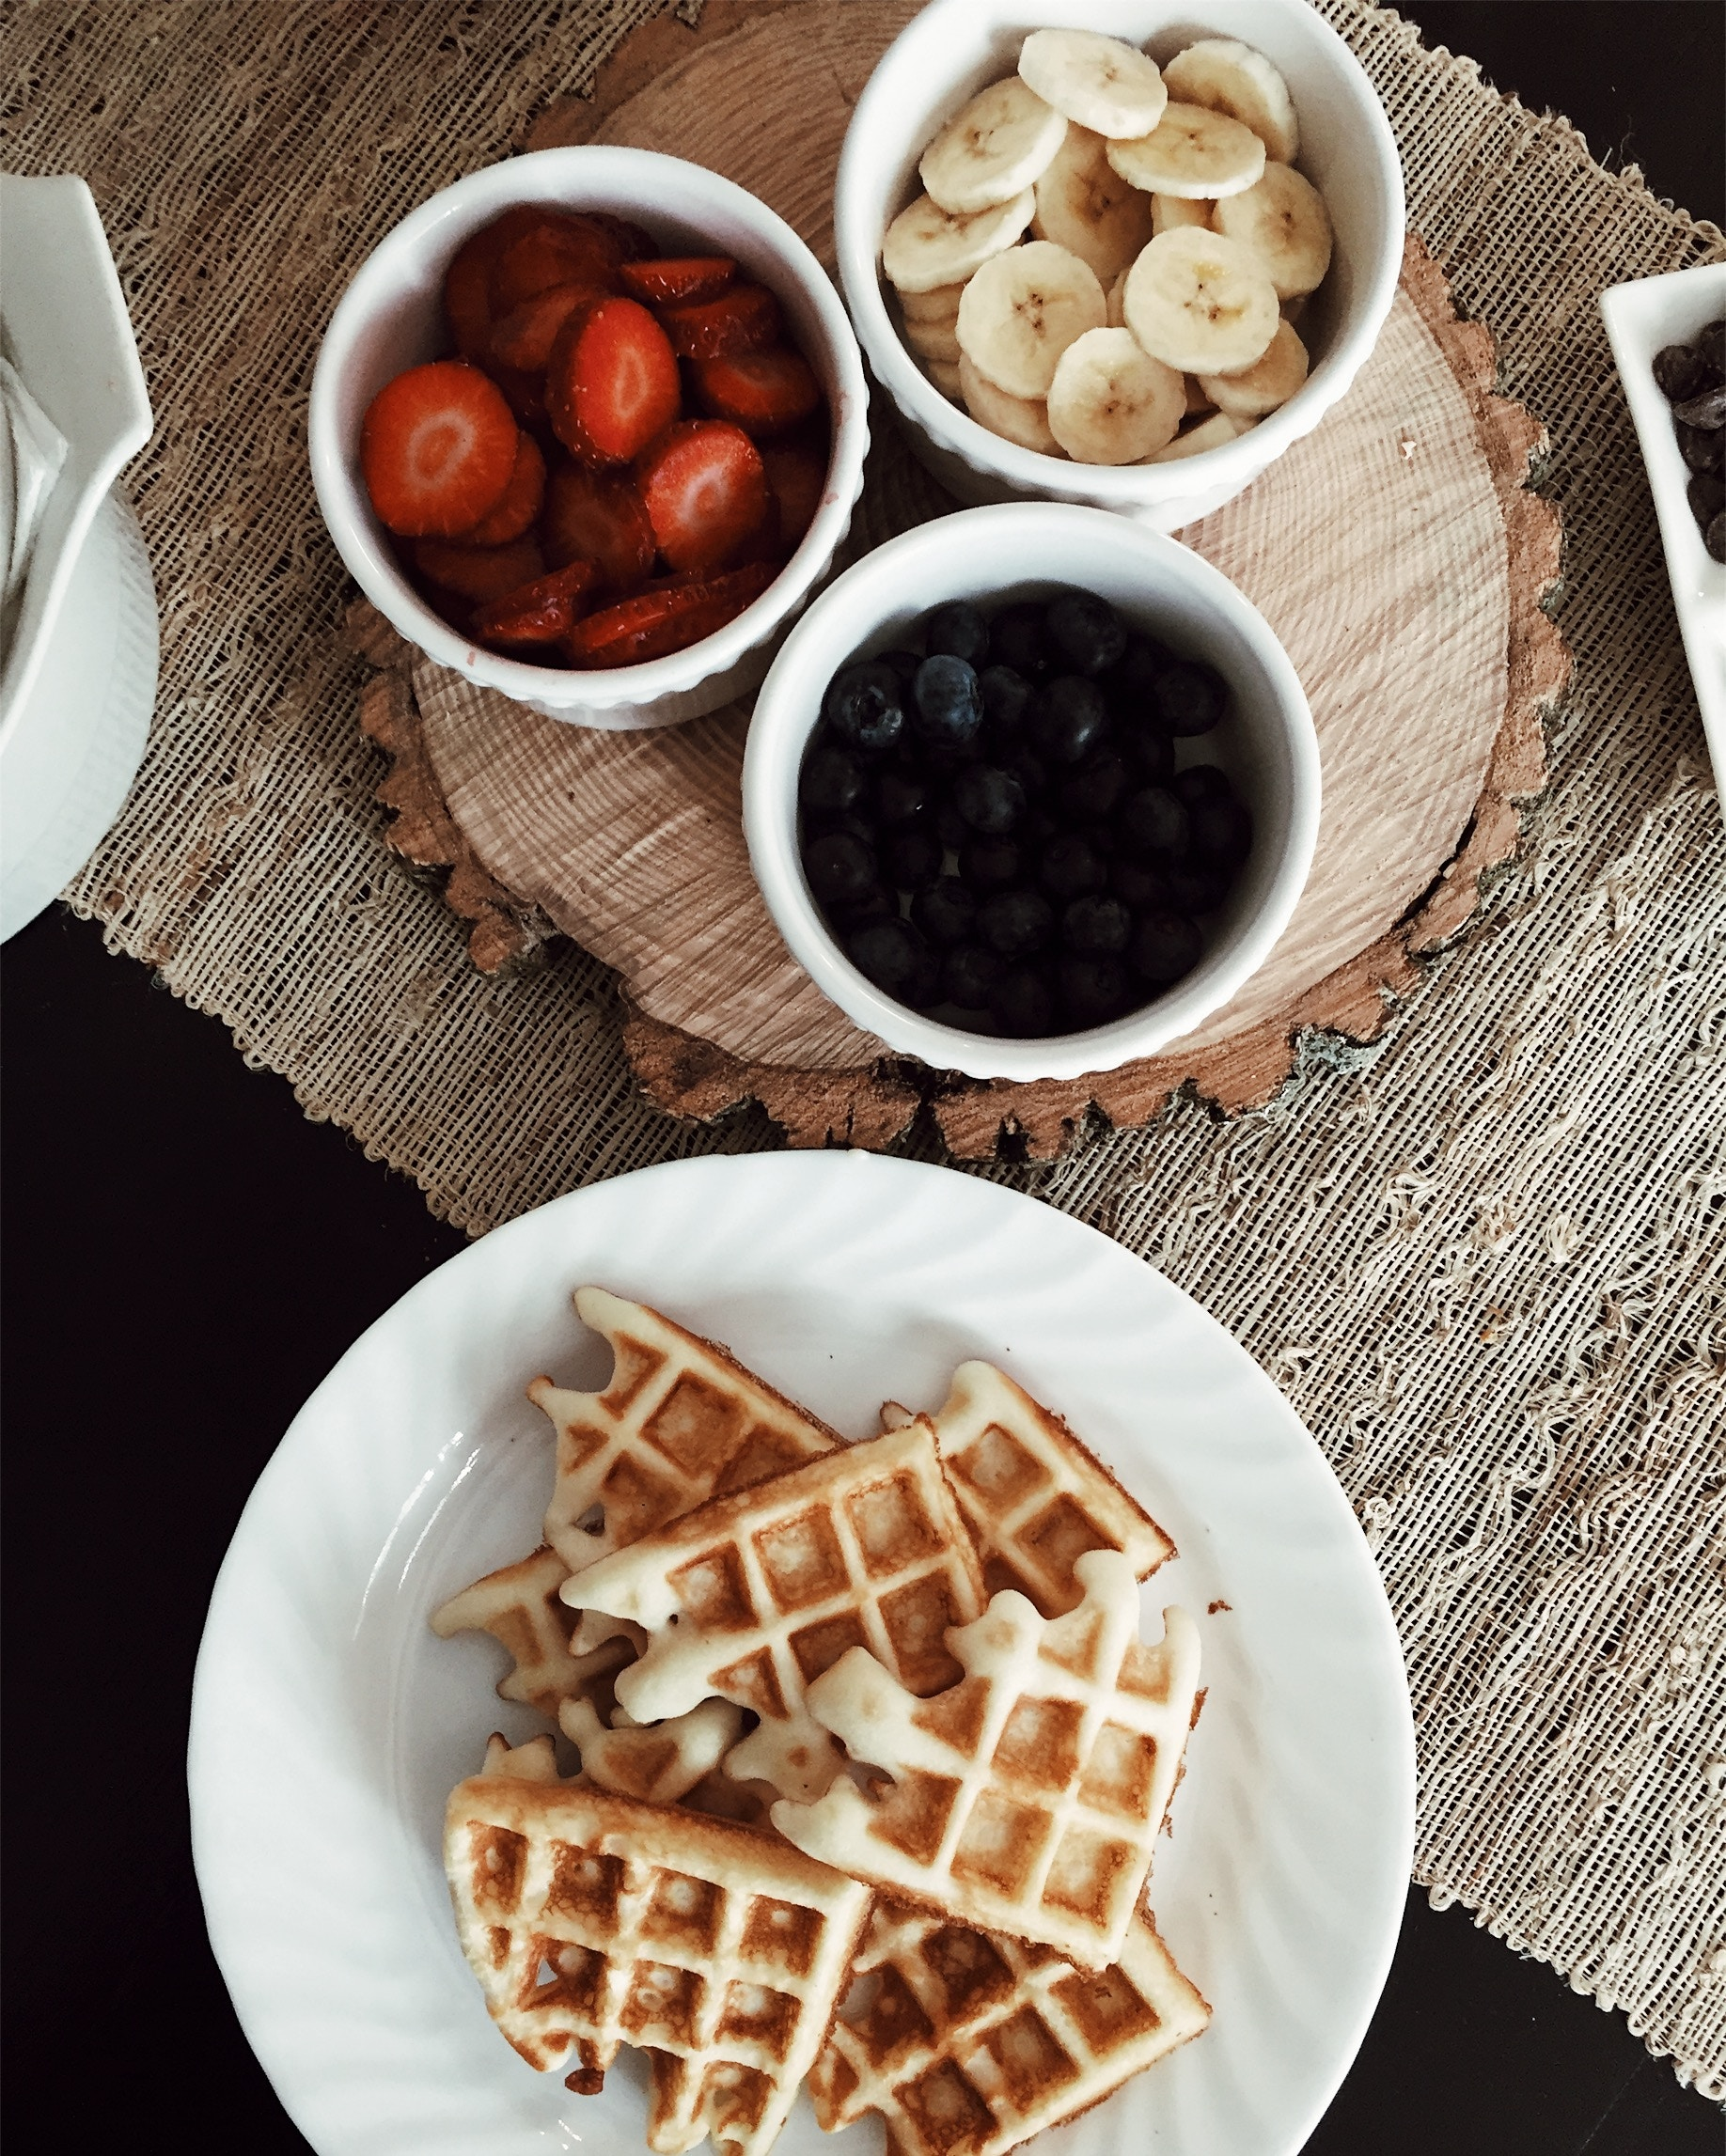 If you don't have a waffle maker, you may want to get one quick. Crispy, light, and full of flavor, these vanilla scented gems will quickly become your Sunday morning standby. They're the perfect way to begin any Valentine's Day morning. All you need are 6 ingredients, one bowl, and a stellar heart shaped waffle iron.